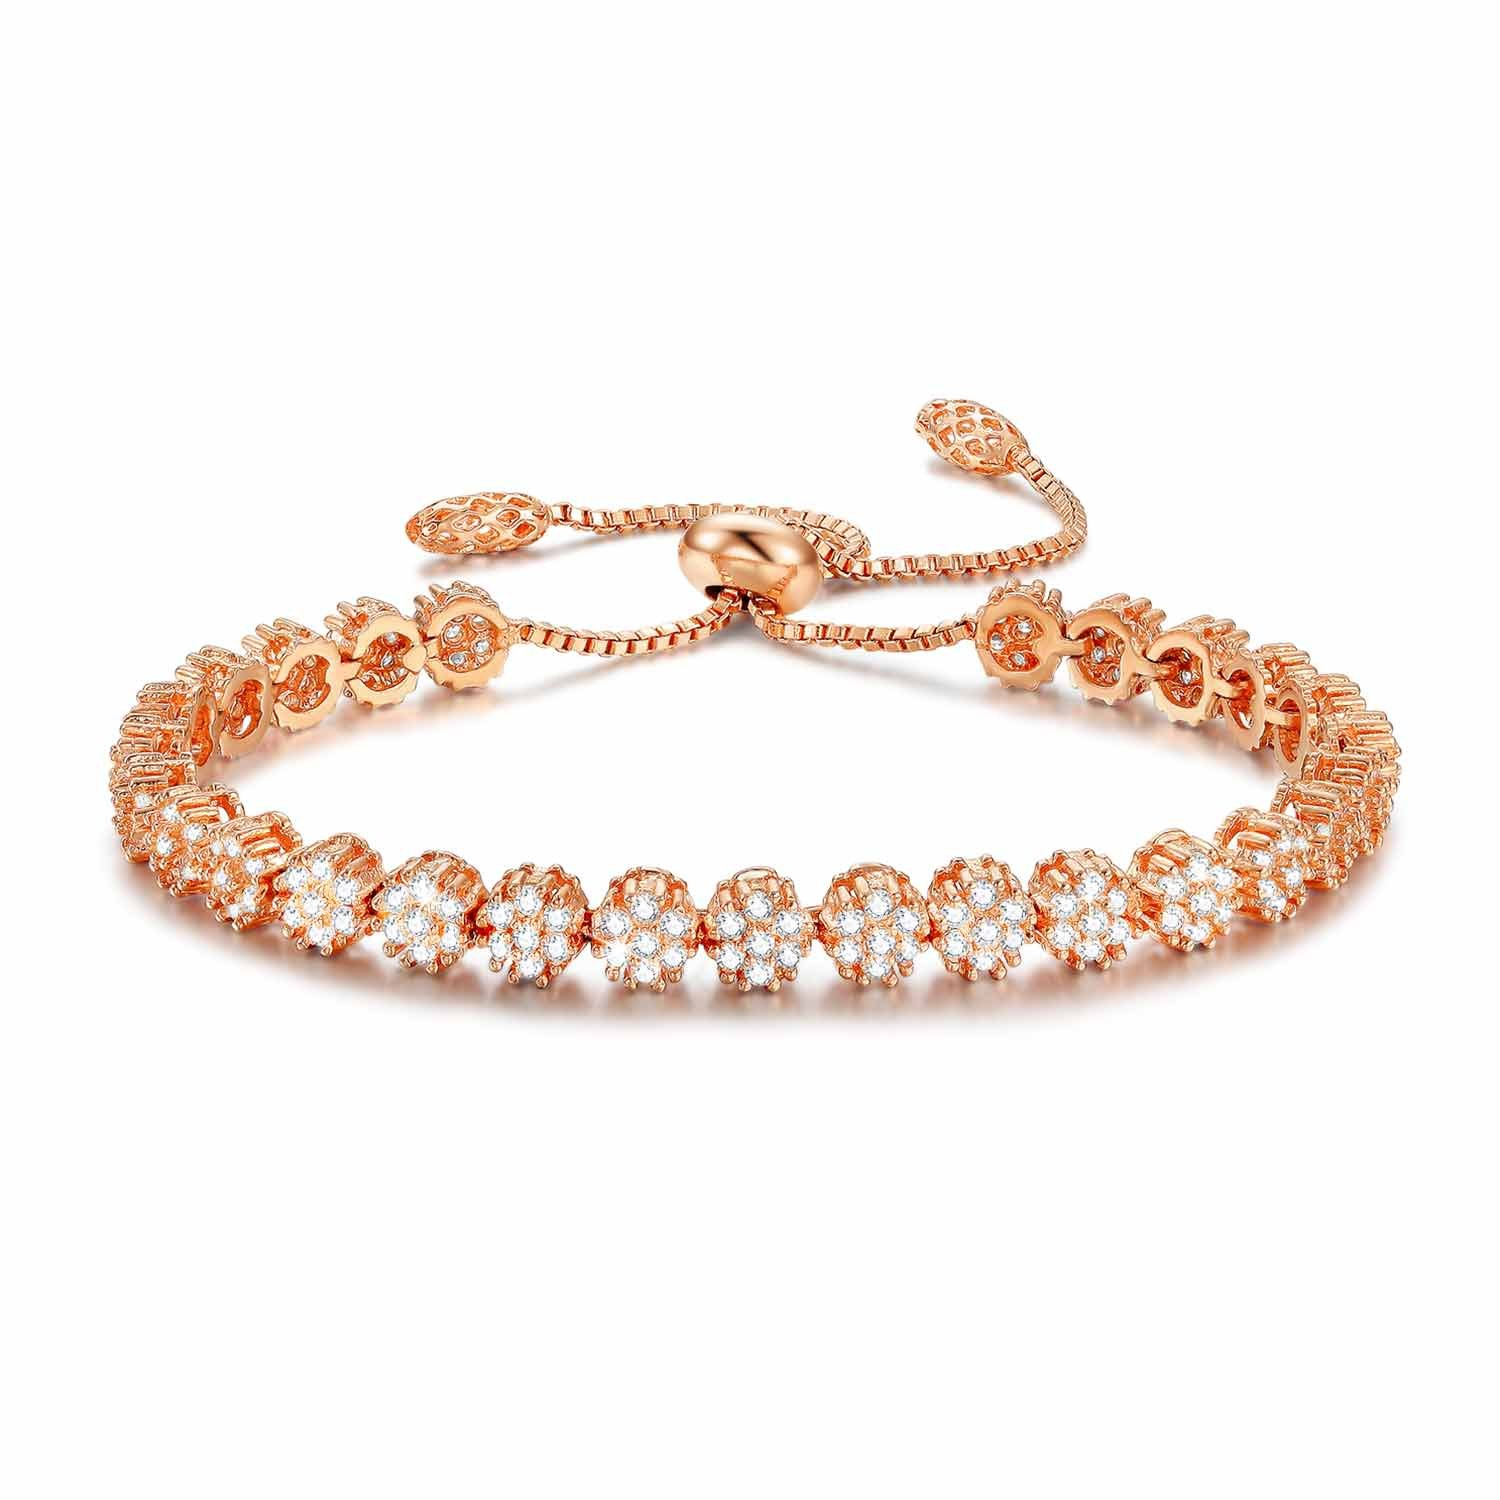 SPILOVE Serend Rose Gold Plated Adjustable Bracelet with Sparkling White Cubic Zirconia Stone for Women